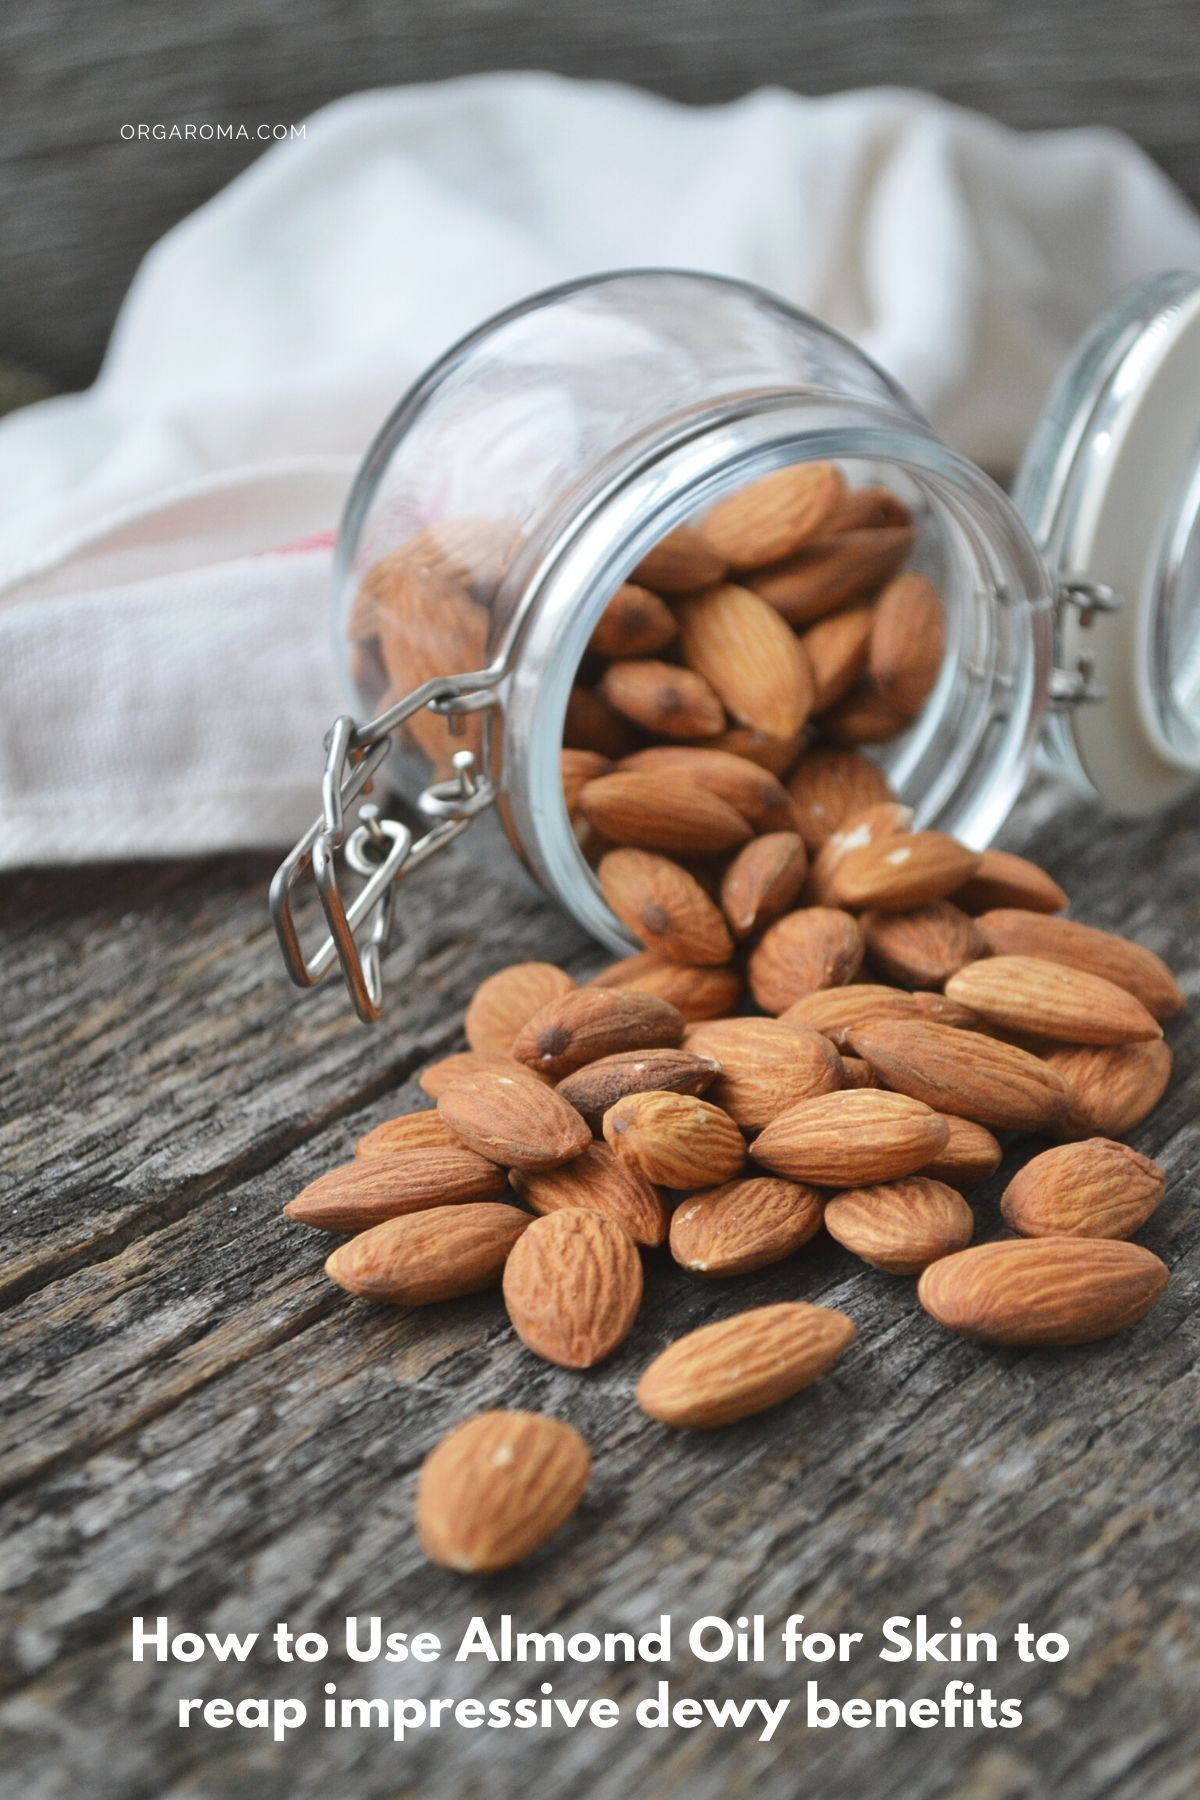 How to Use Almond Oil for Skin to reap impressive dewy benefits